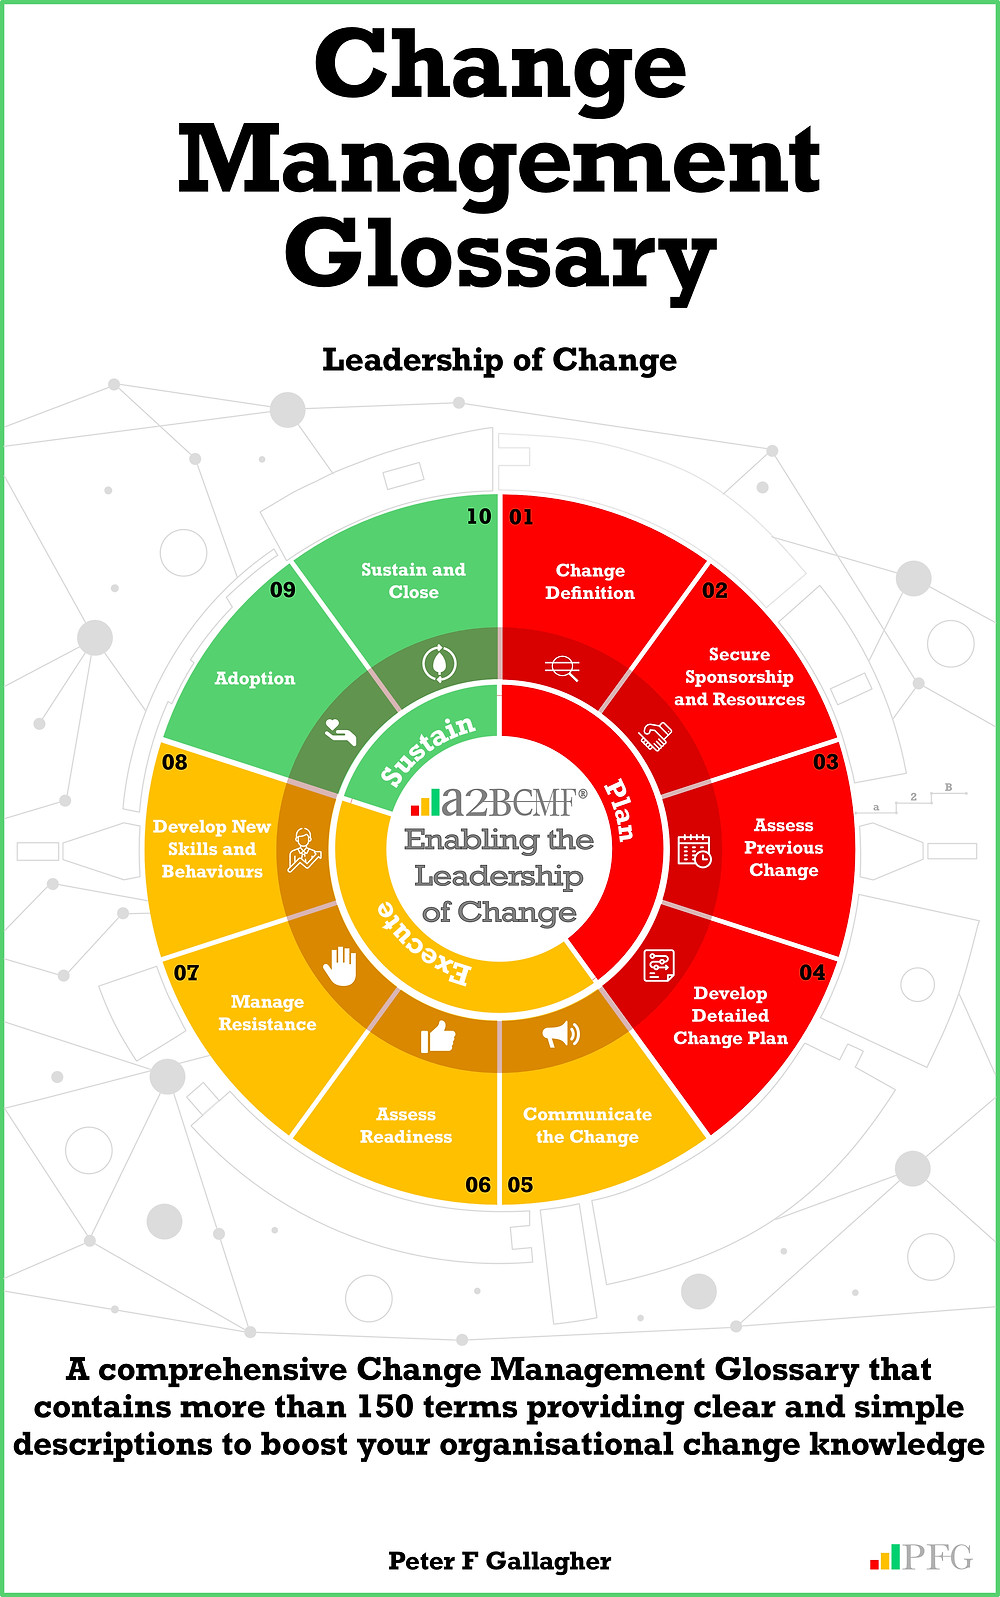 Change Management Glossary, Peter F Gallagher, Leadership of Change